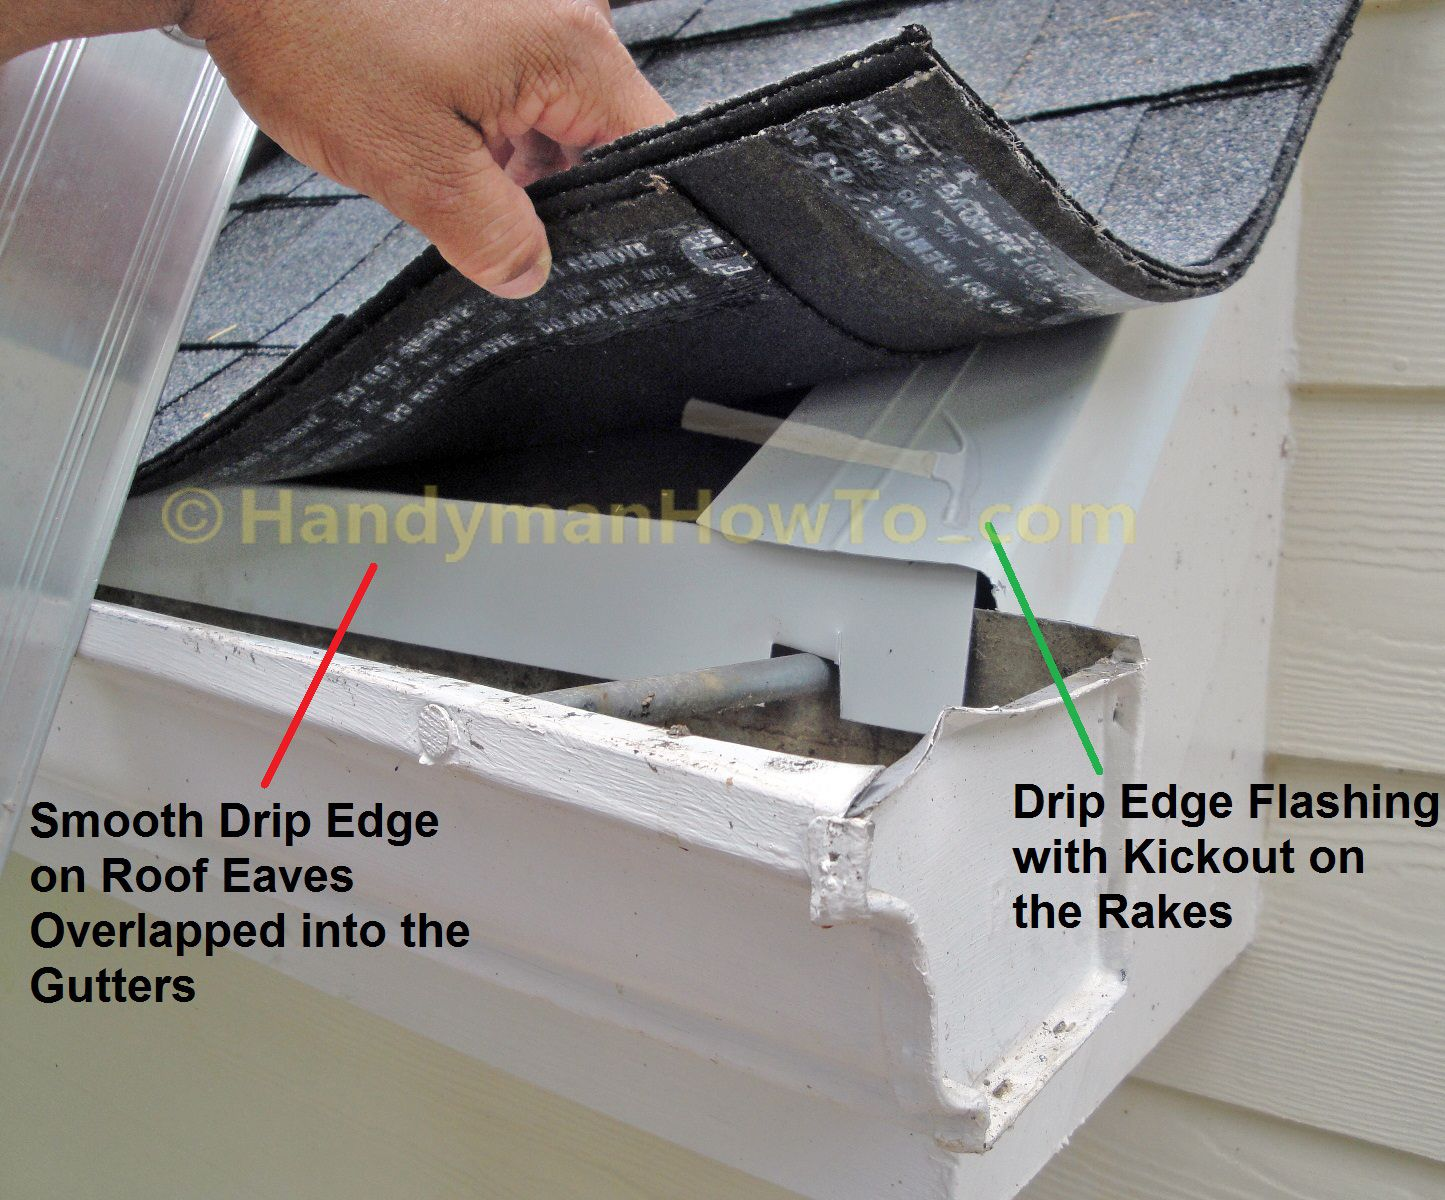 Replace fascia boards in sections - Drip Edge Flashing Is Installed On The Roof Eaves And Rakes To Protect The Fascia Board